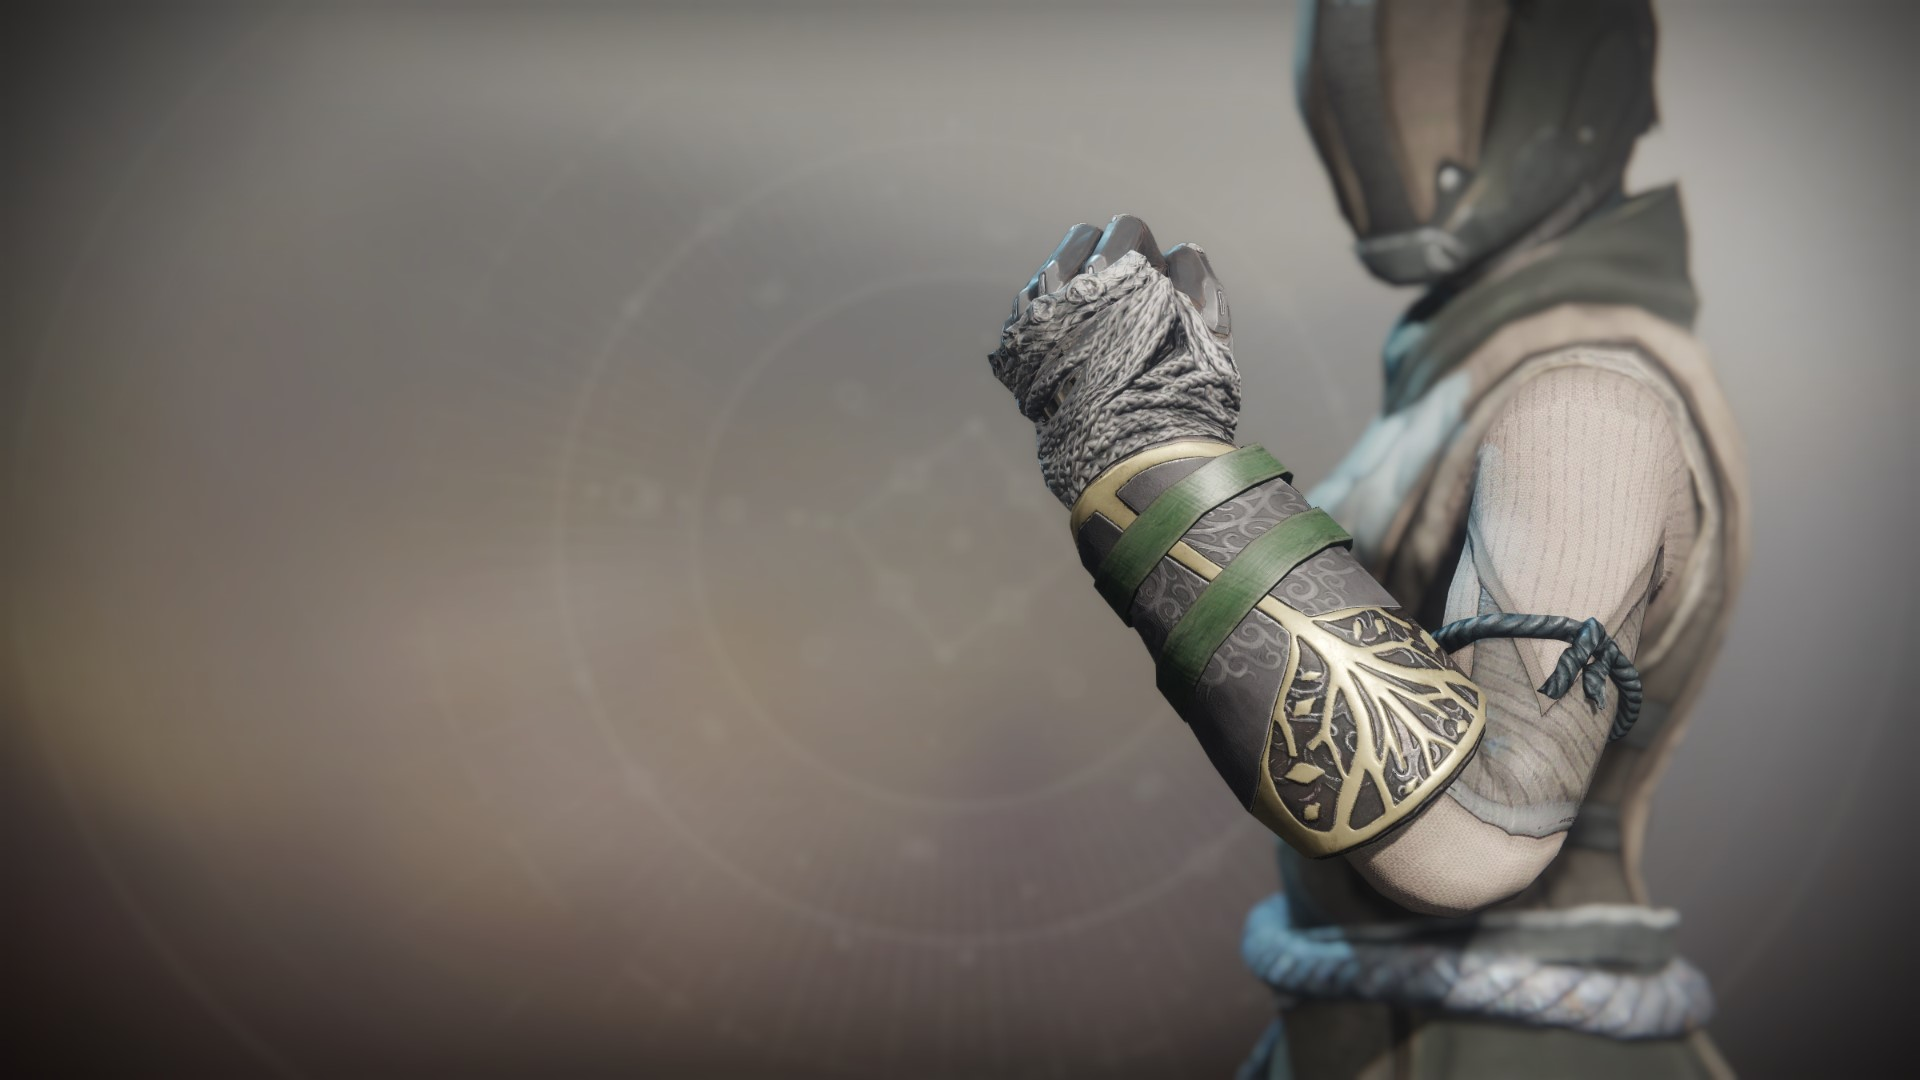 An in-game render of the Iron Truage Gloves.